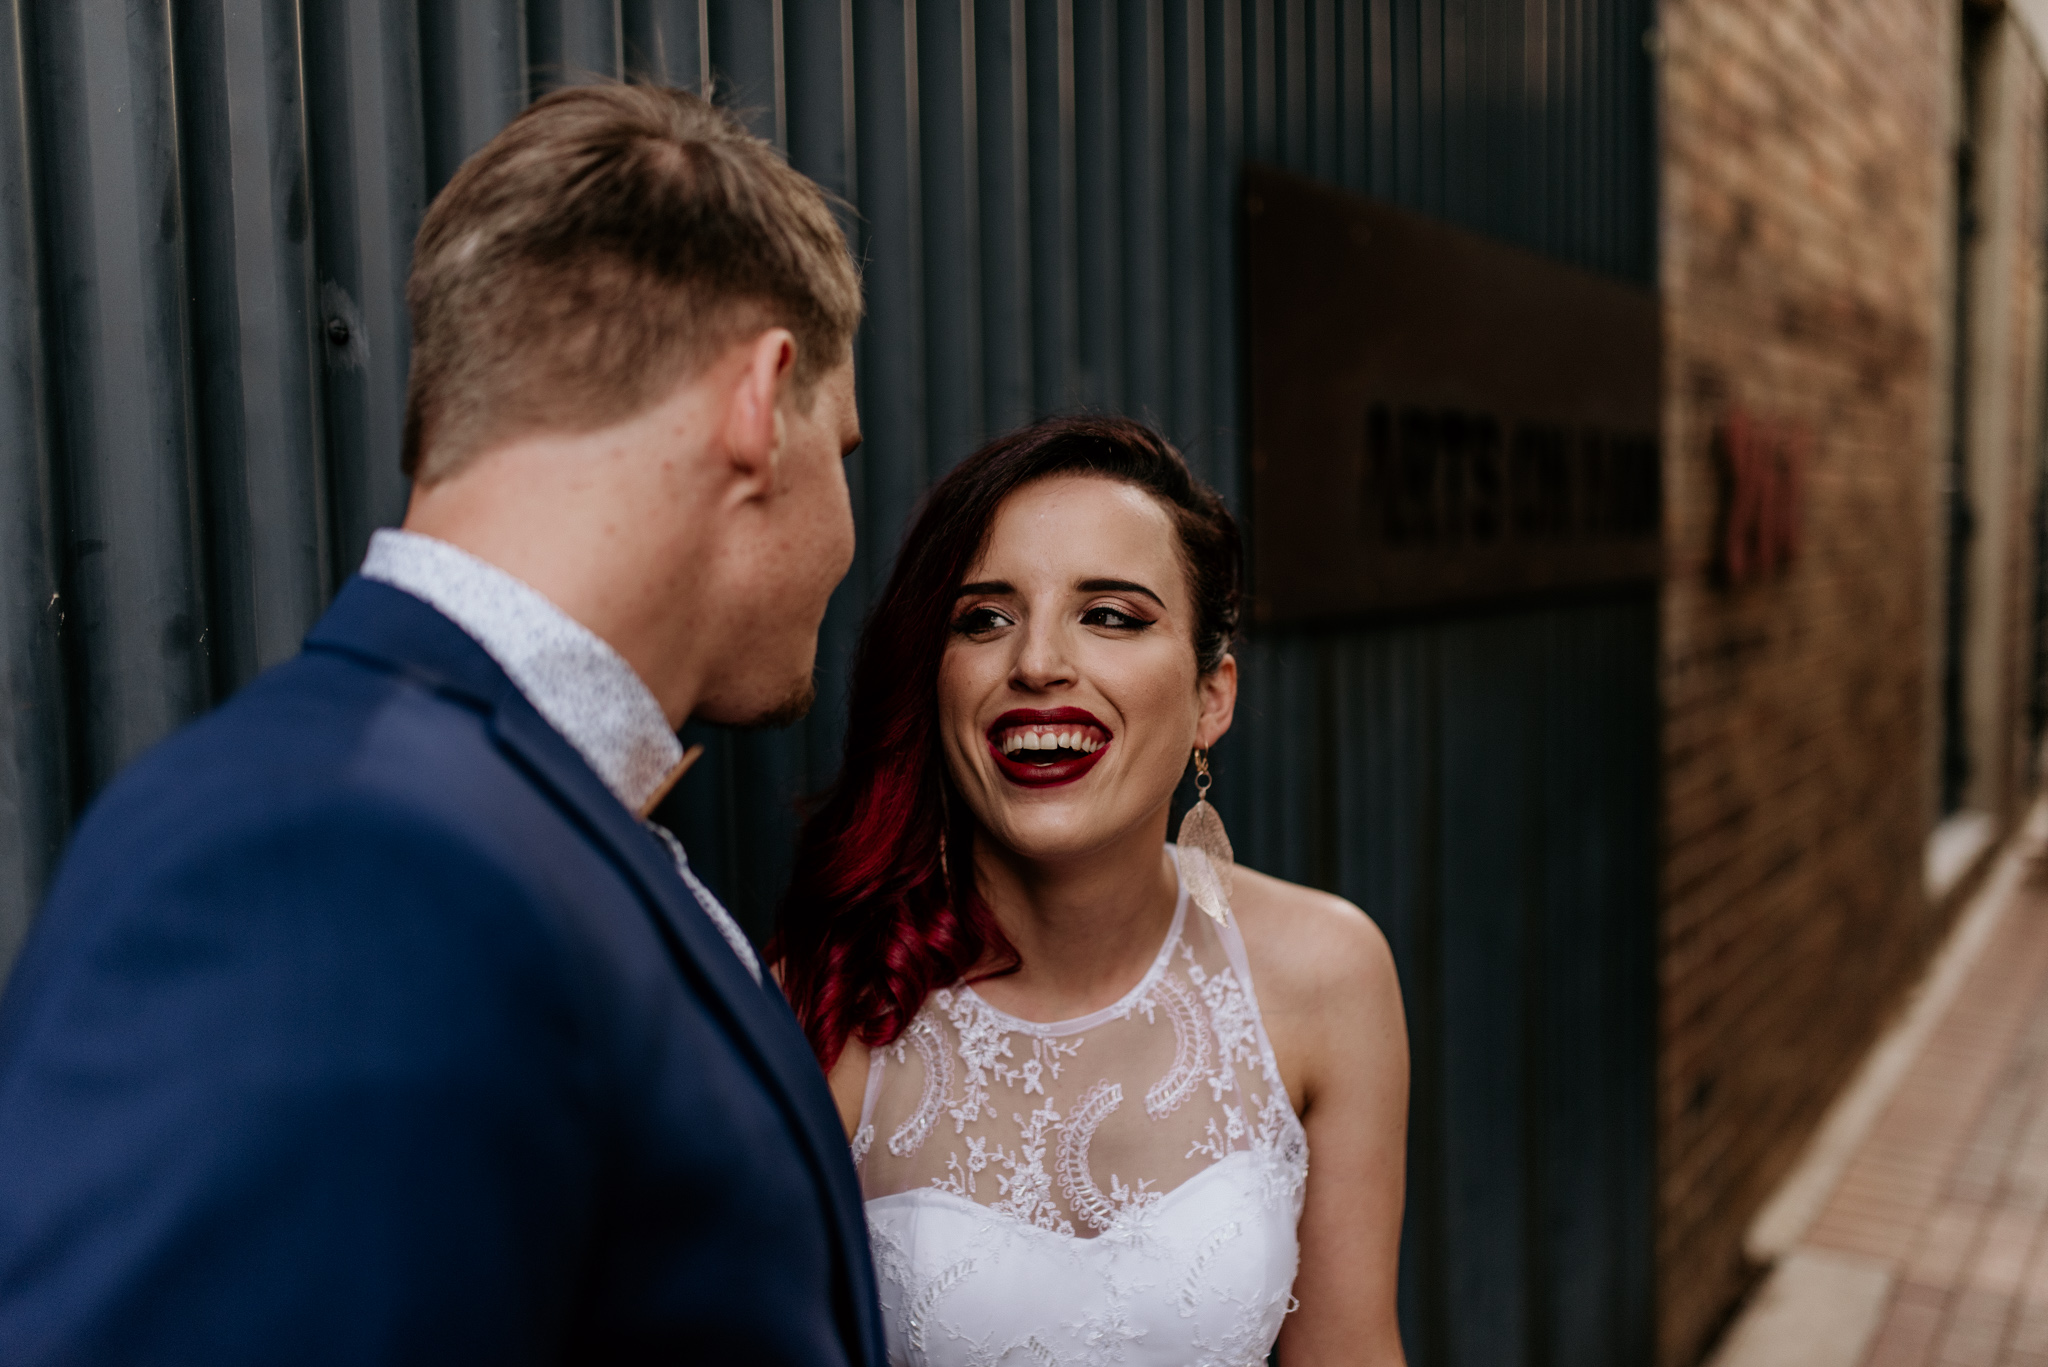 Beautiful young bride with red hair smiles at her new husband in Johannesburg